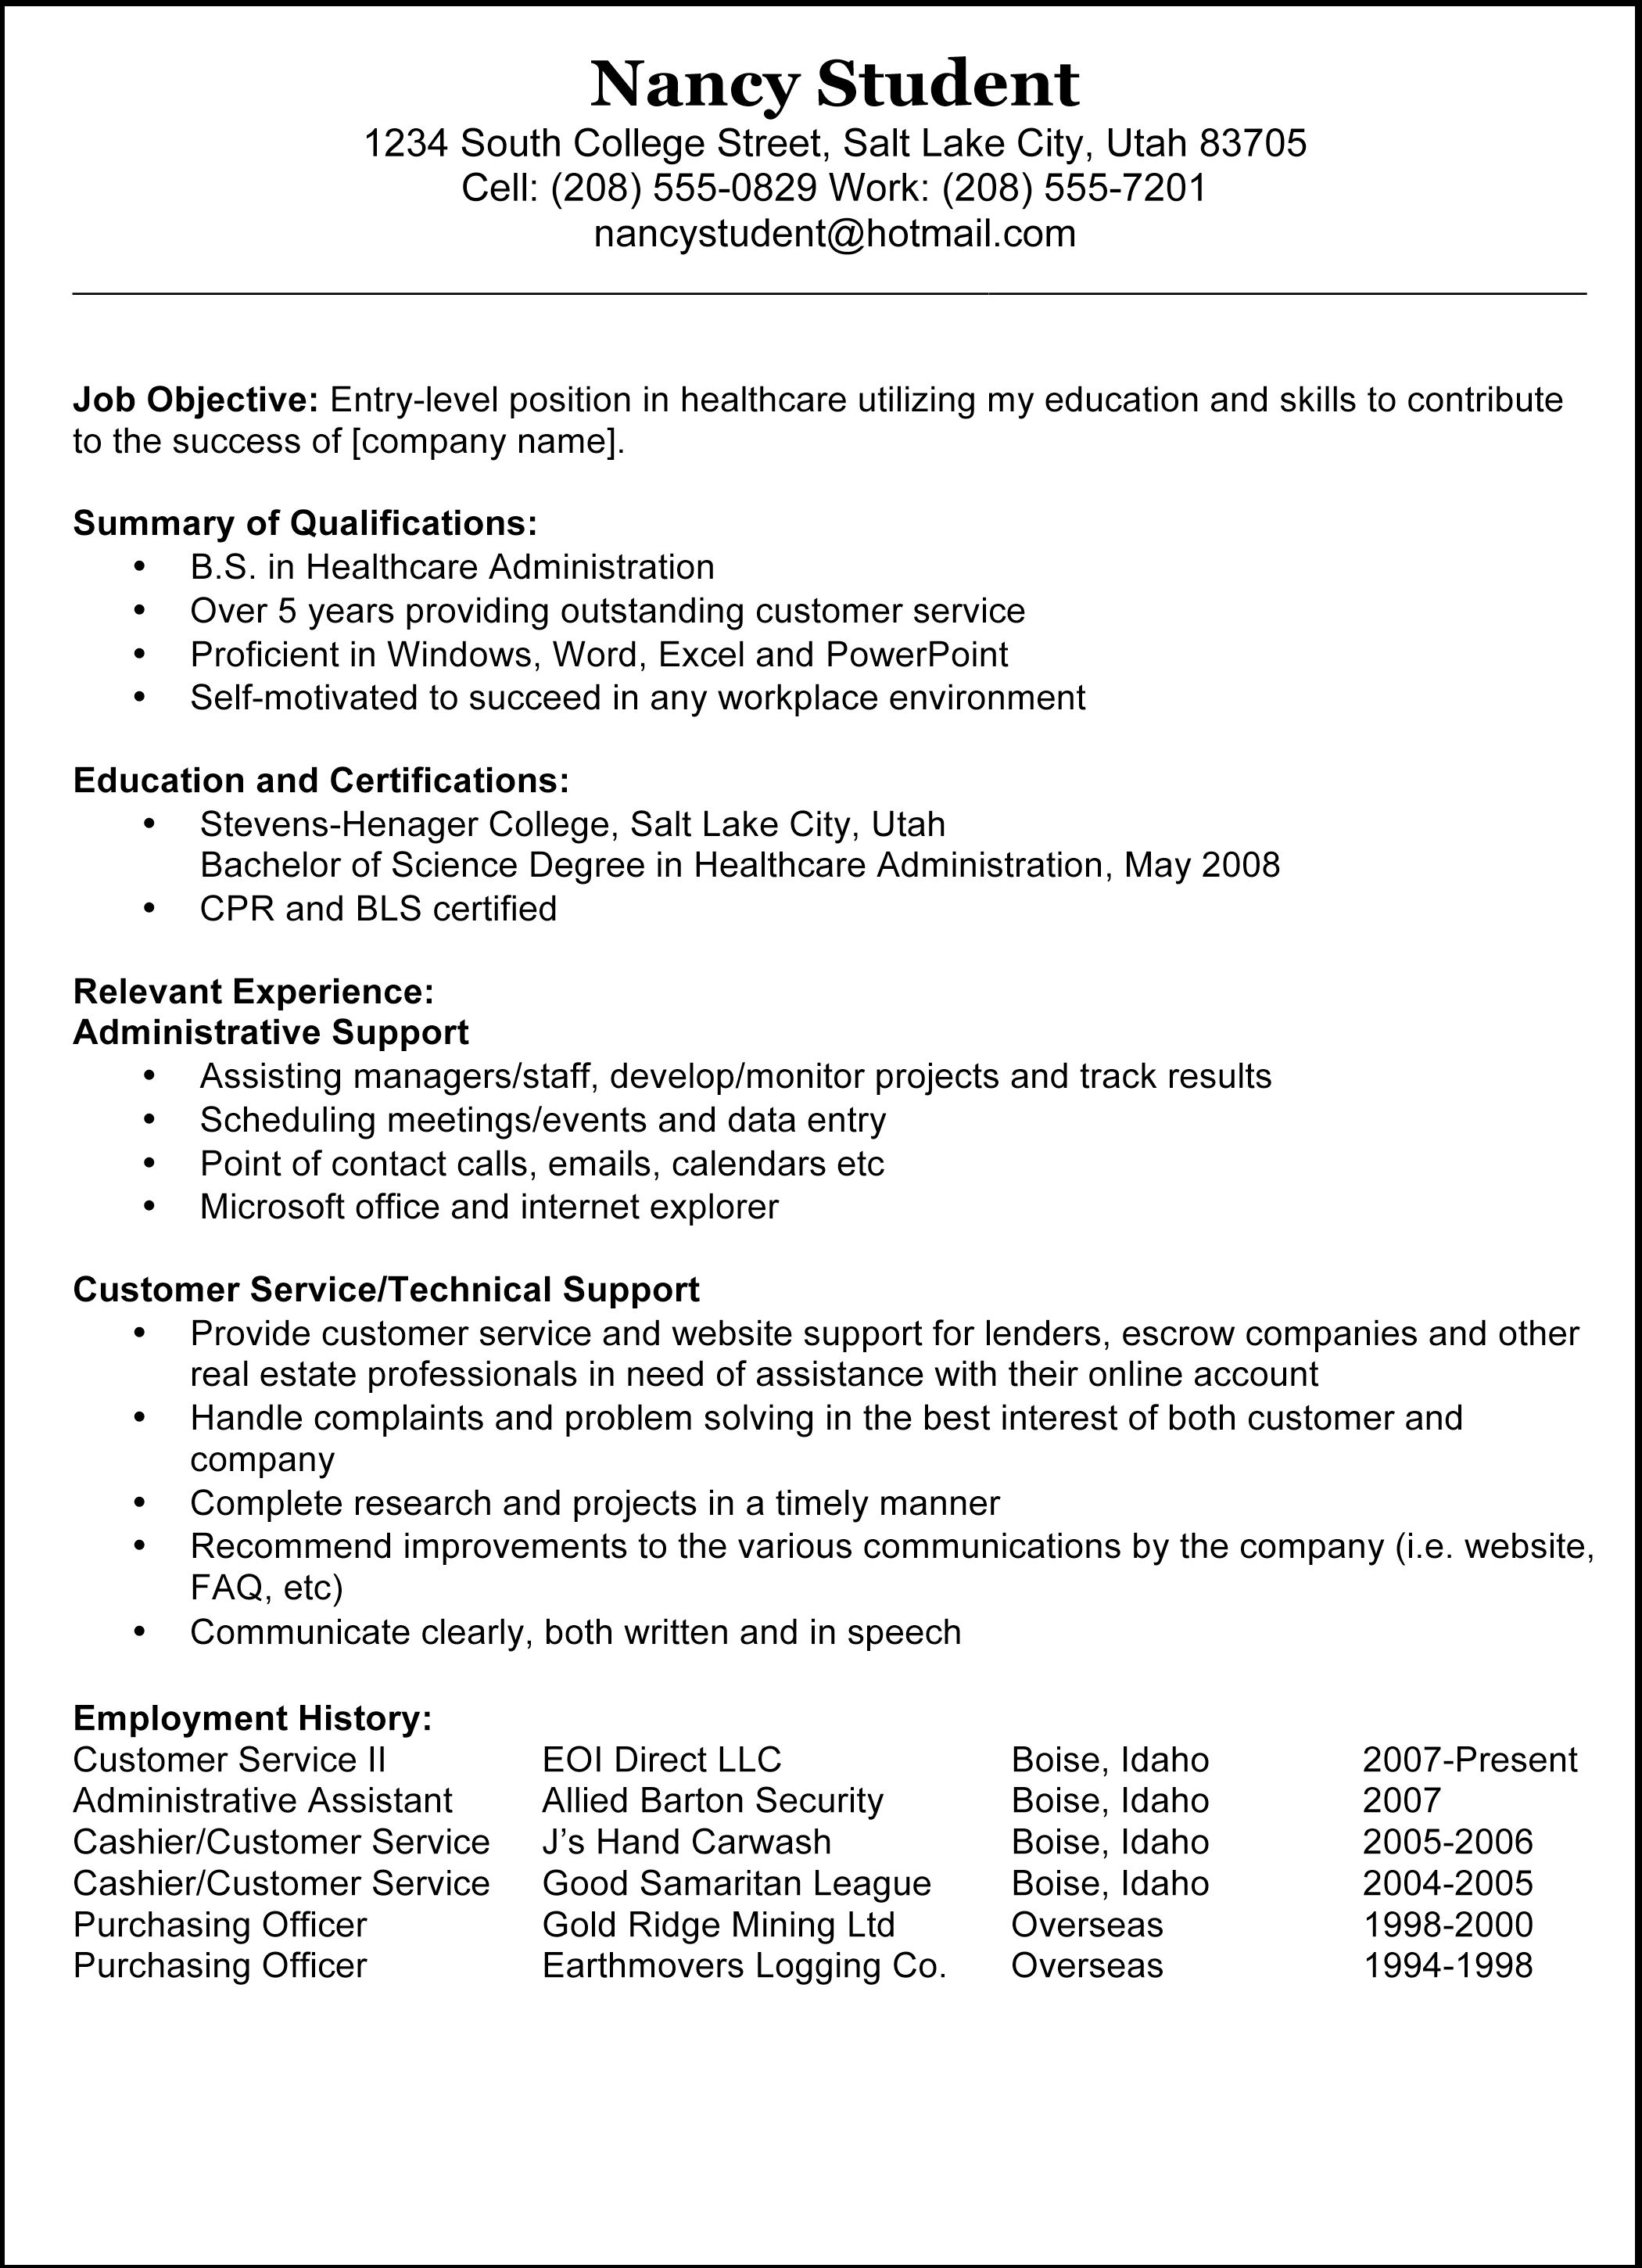 Resume Format Examples Resume Format Example Ziptogreen Within 81 Astounding Good Resume